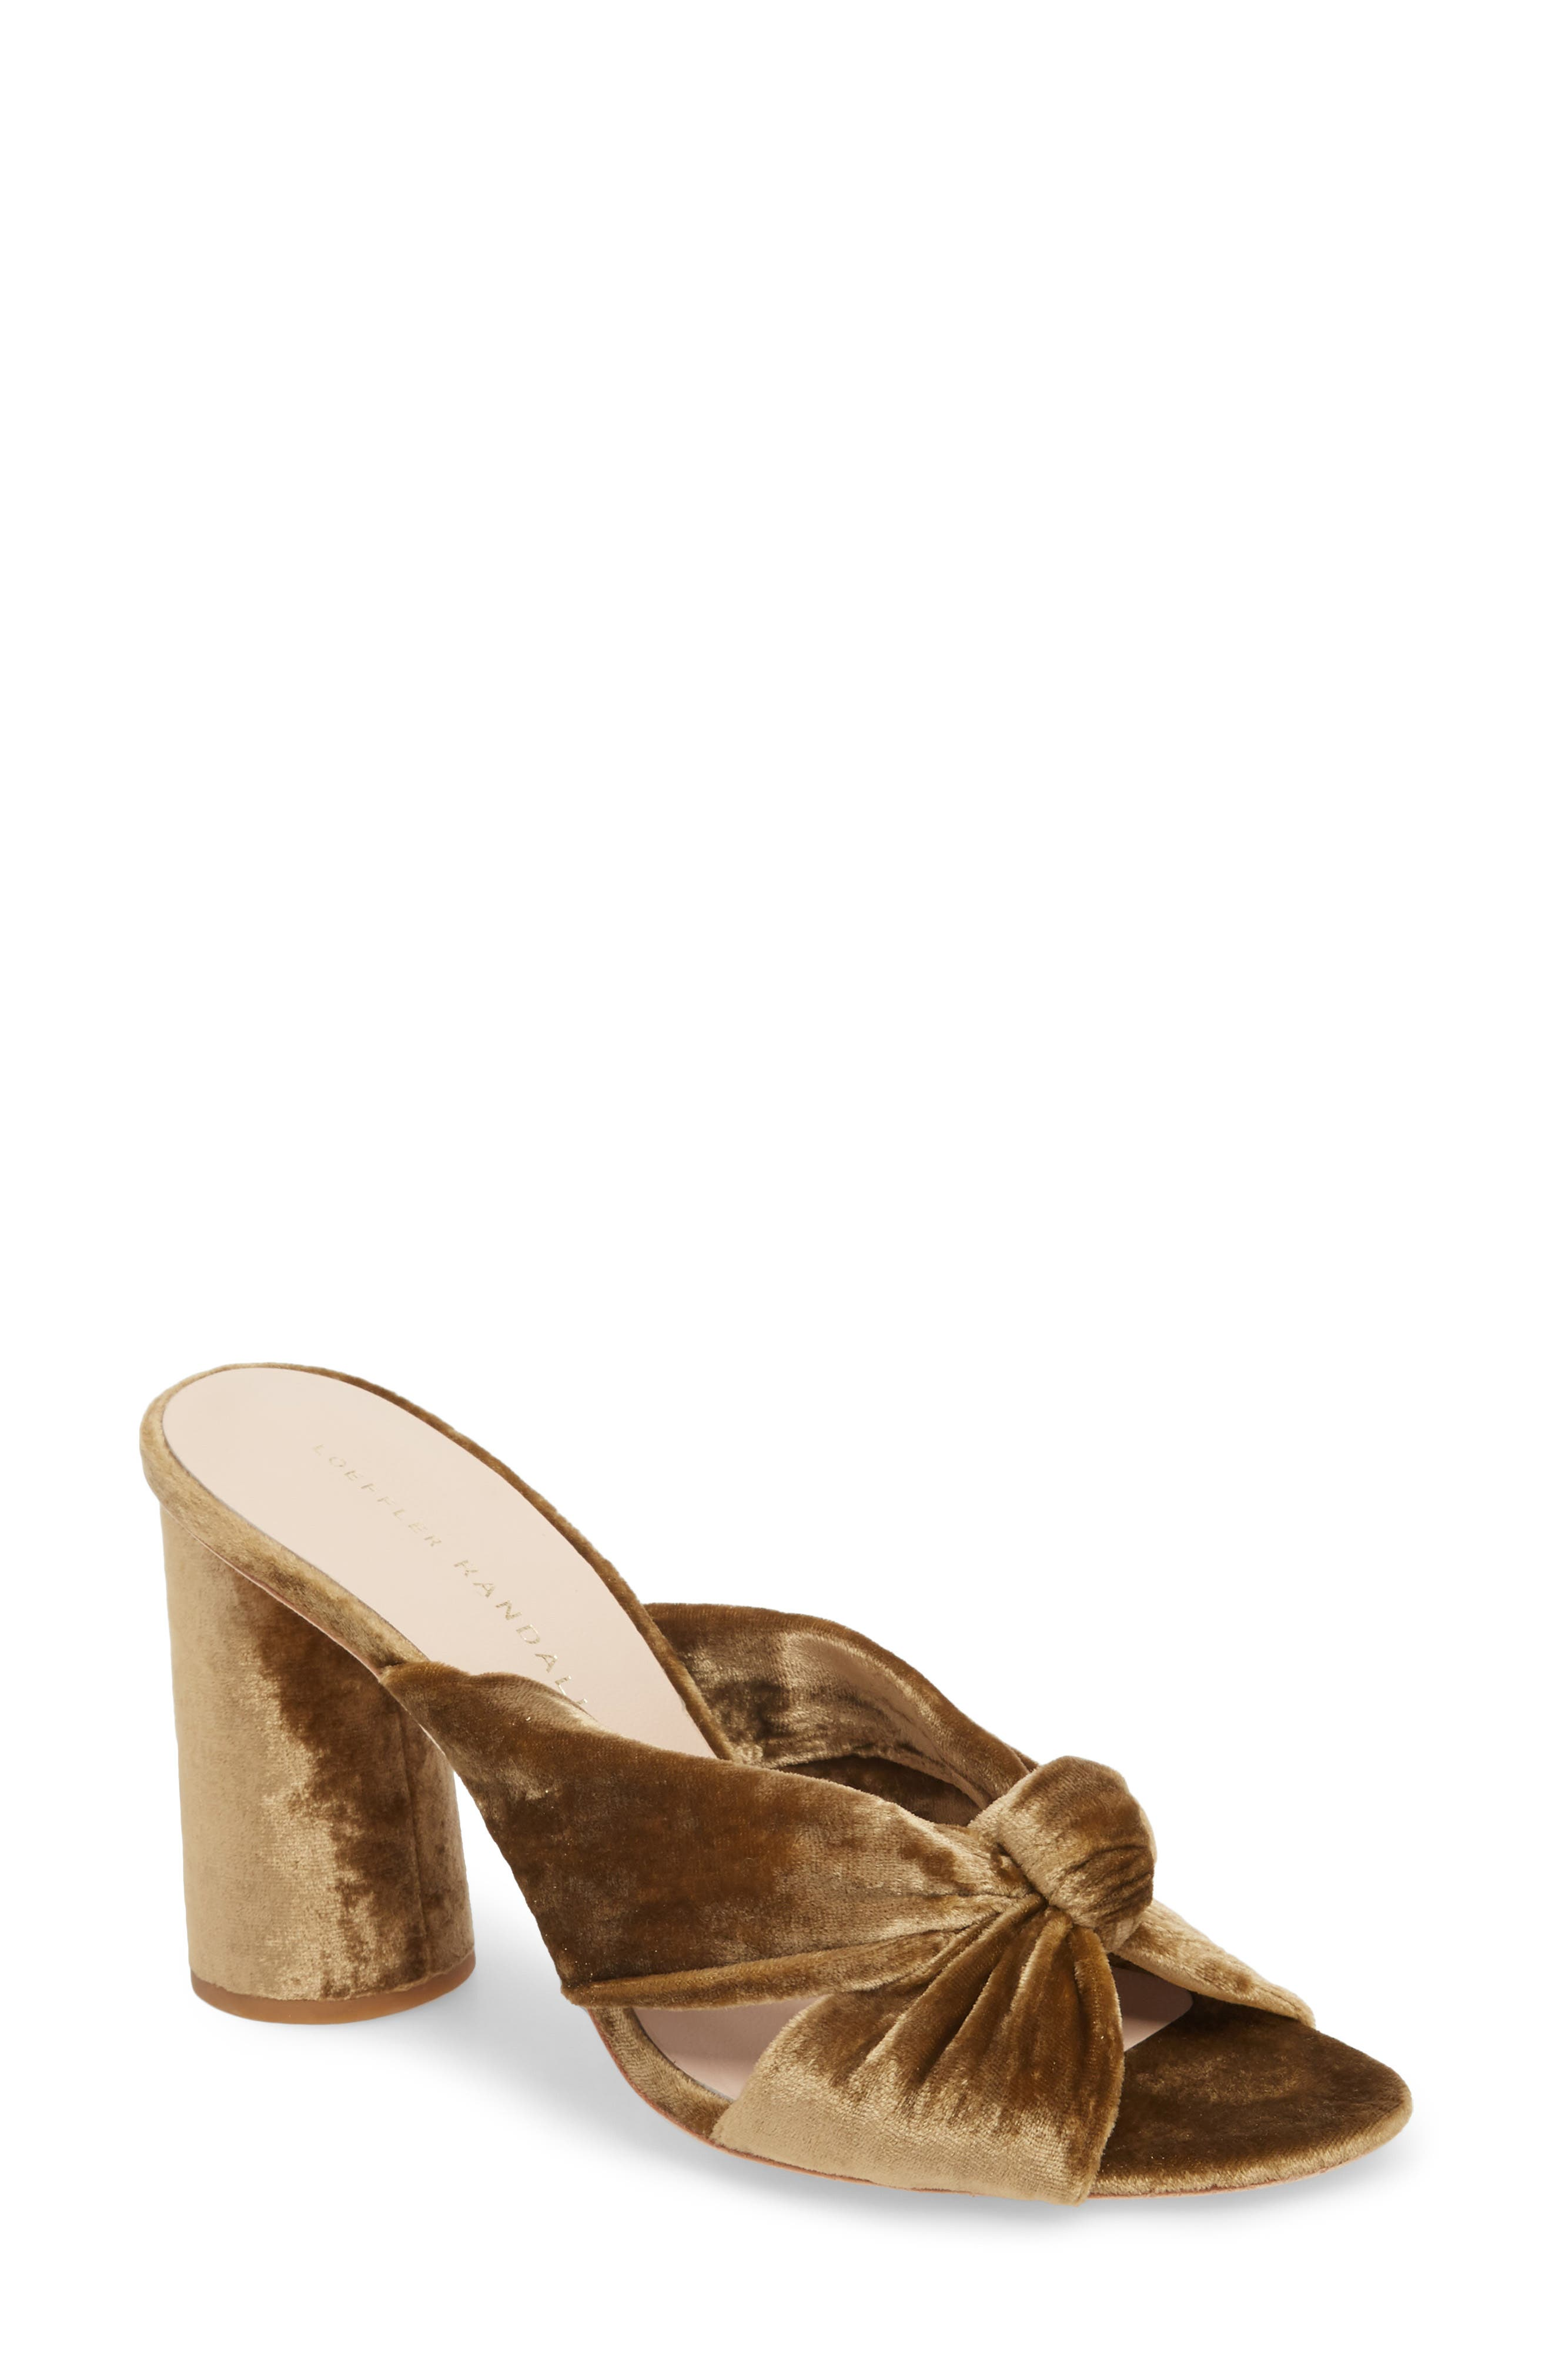 Coco Sandal,                         Main,                         color, SIENNA